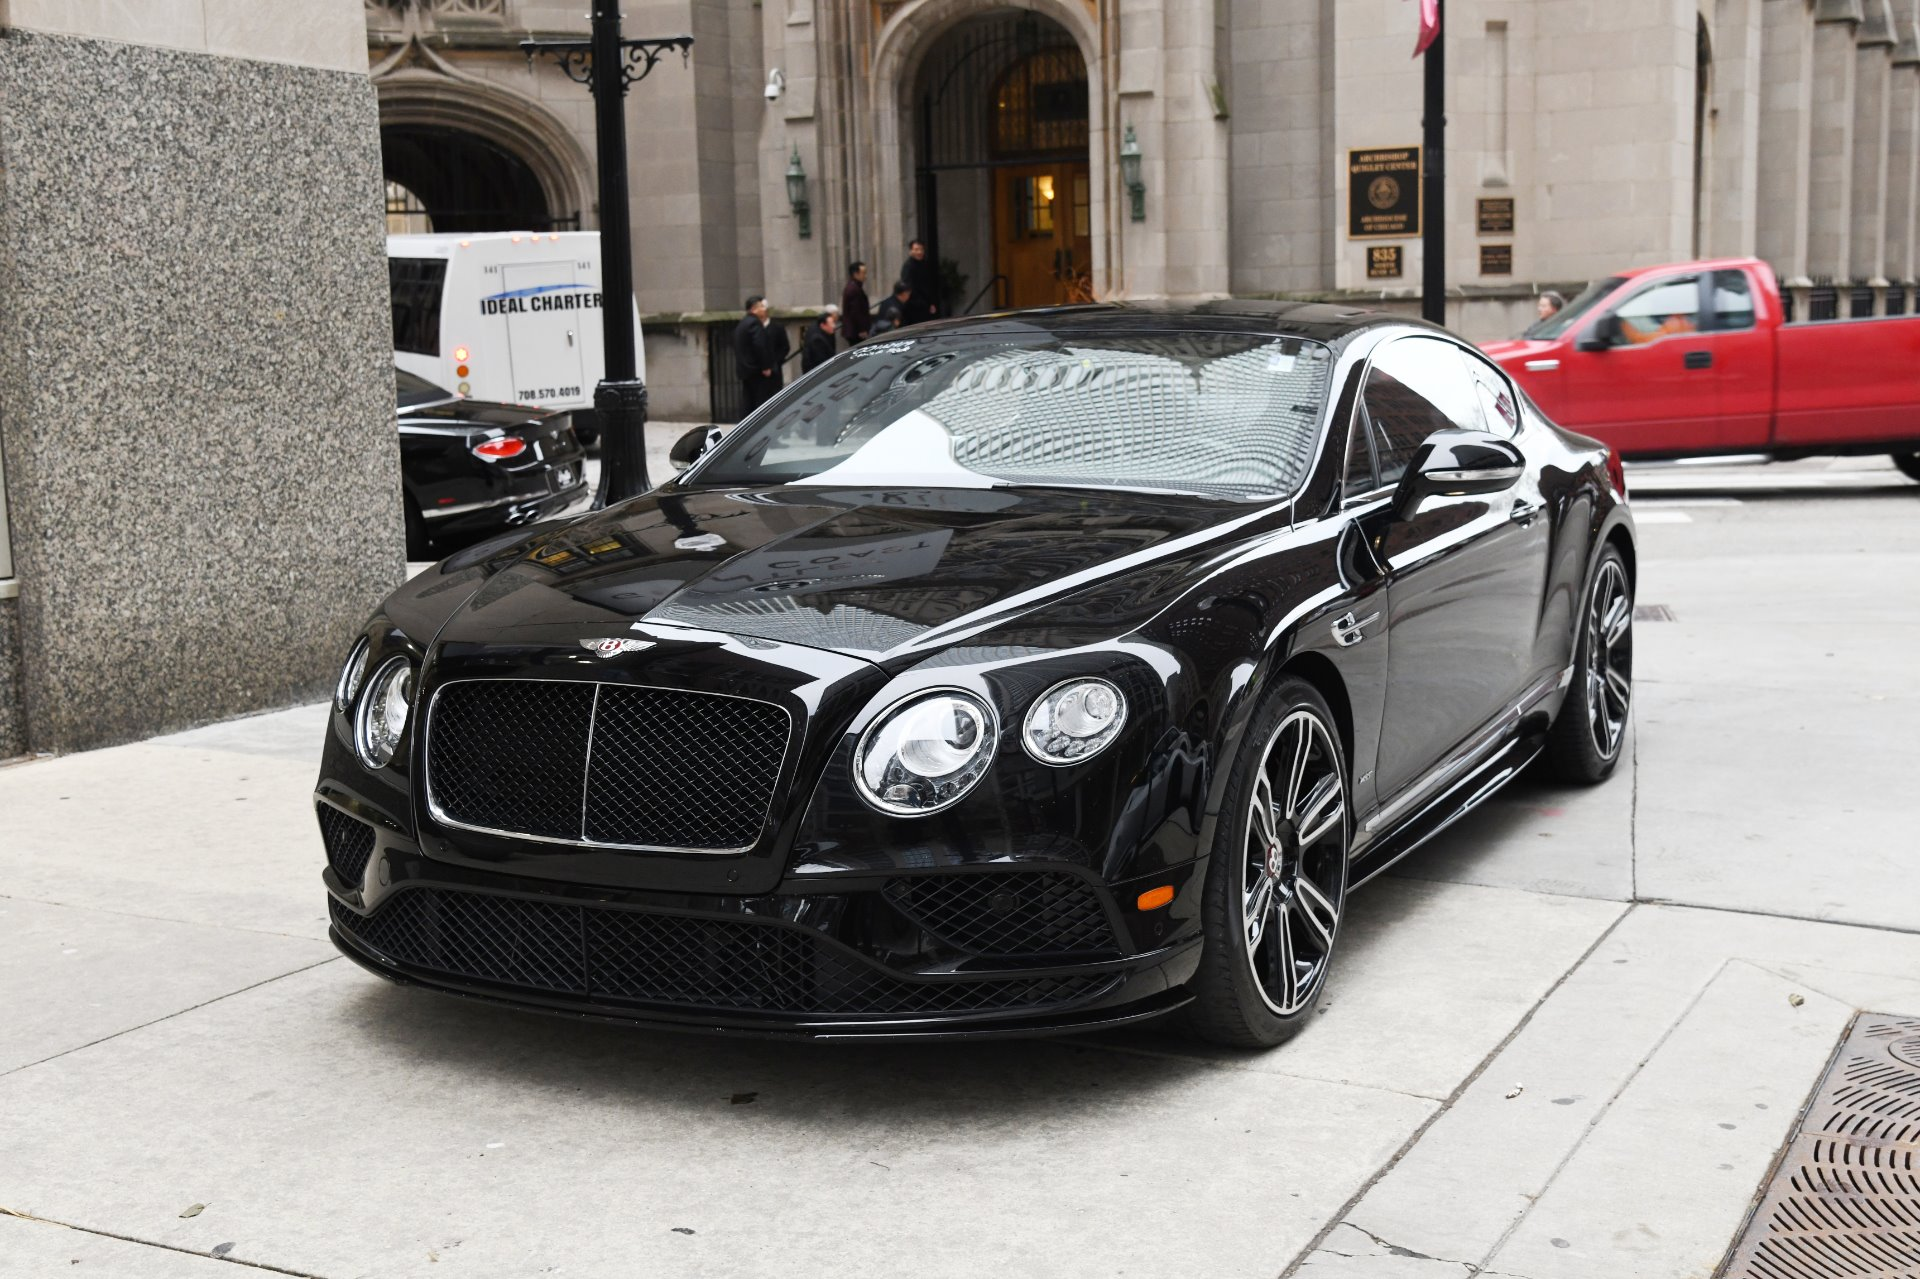 2016 bentley continental gt v8 s stock gc mir89 for sale near chicago il il bentley dealer. Black Bedroom Furniture Sets. Home Design Ideas